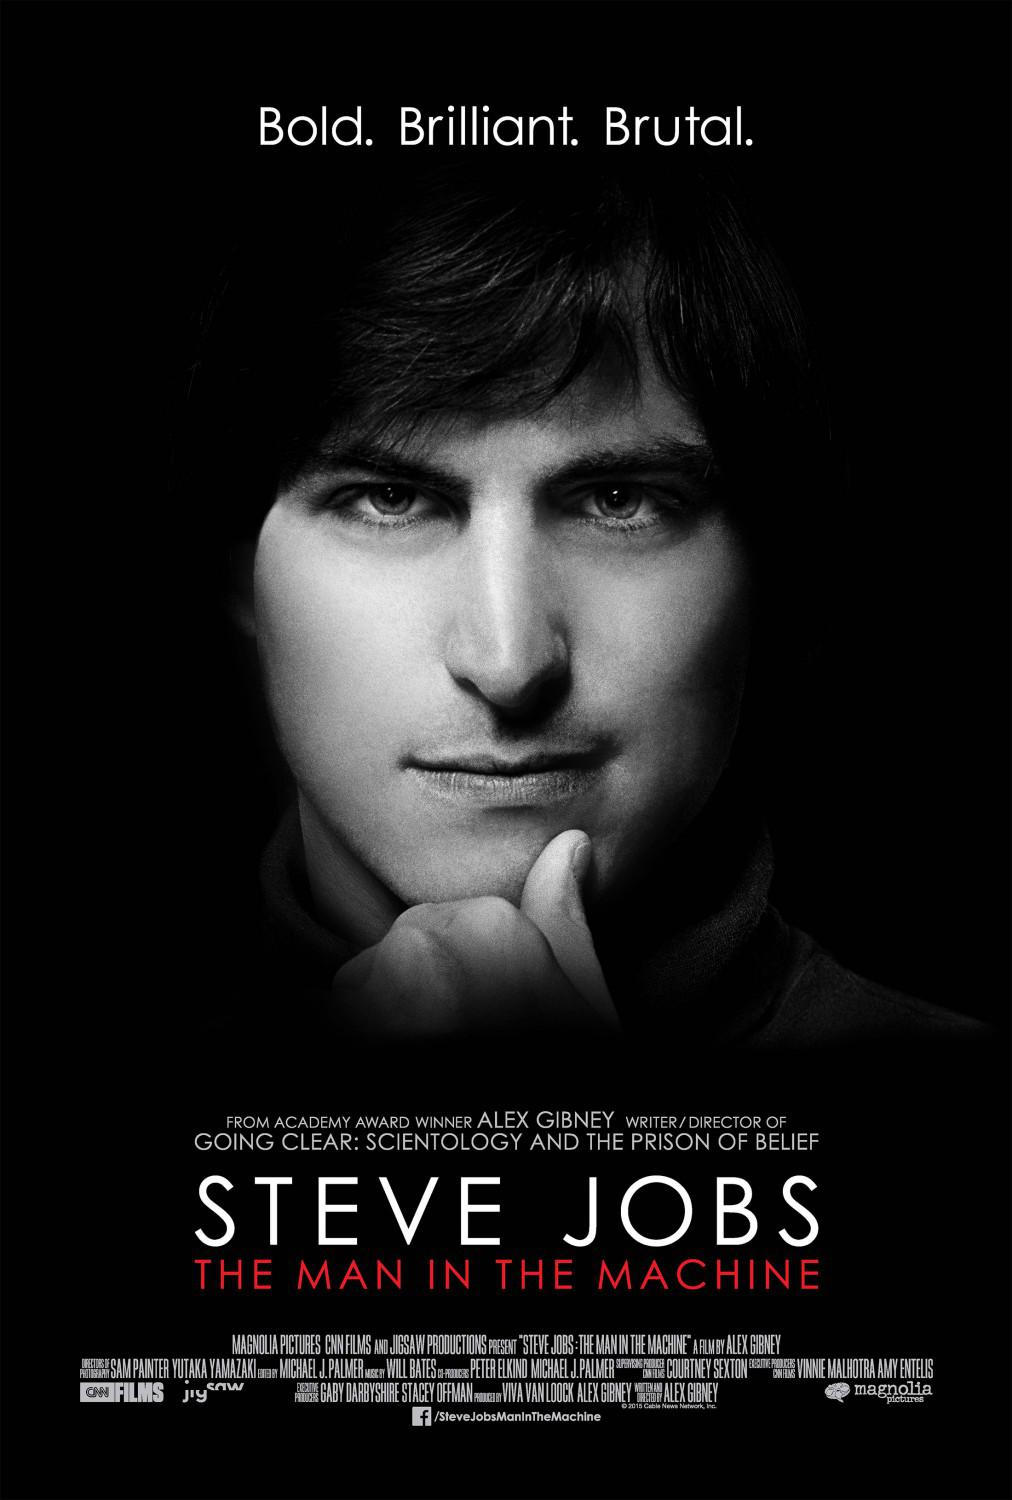 Steve Jobs Man in the Machine - film by Alex Gibney - poster